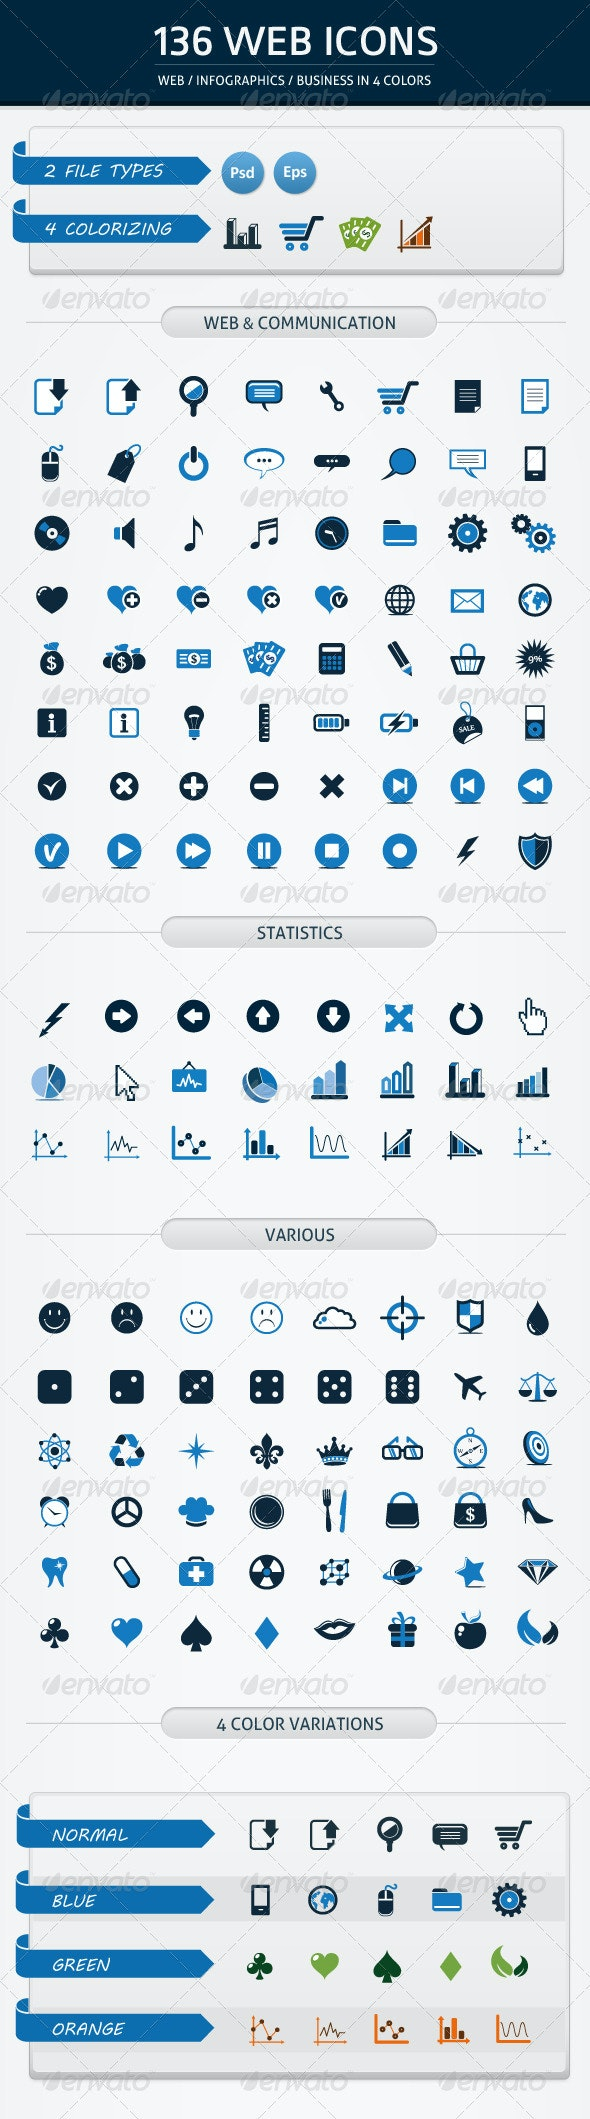 136 WEB ICONS IN 4 COLORS - Web Icons